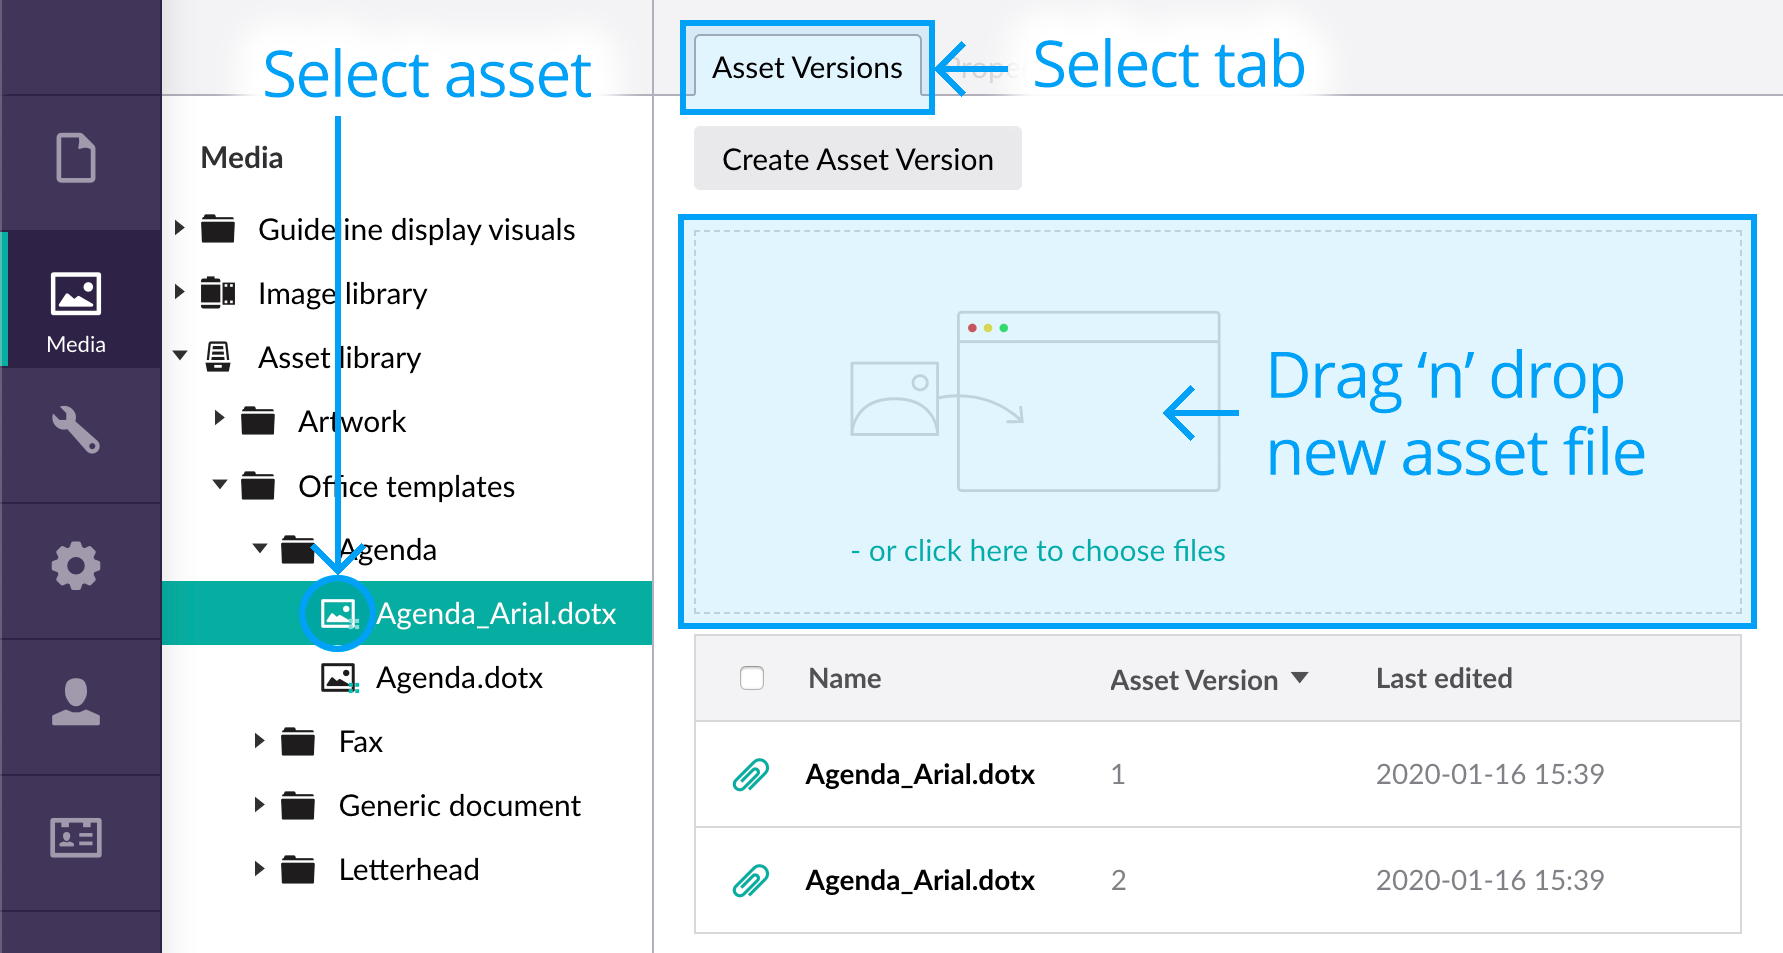 Drag and drop new asset into the asset versions upload area